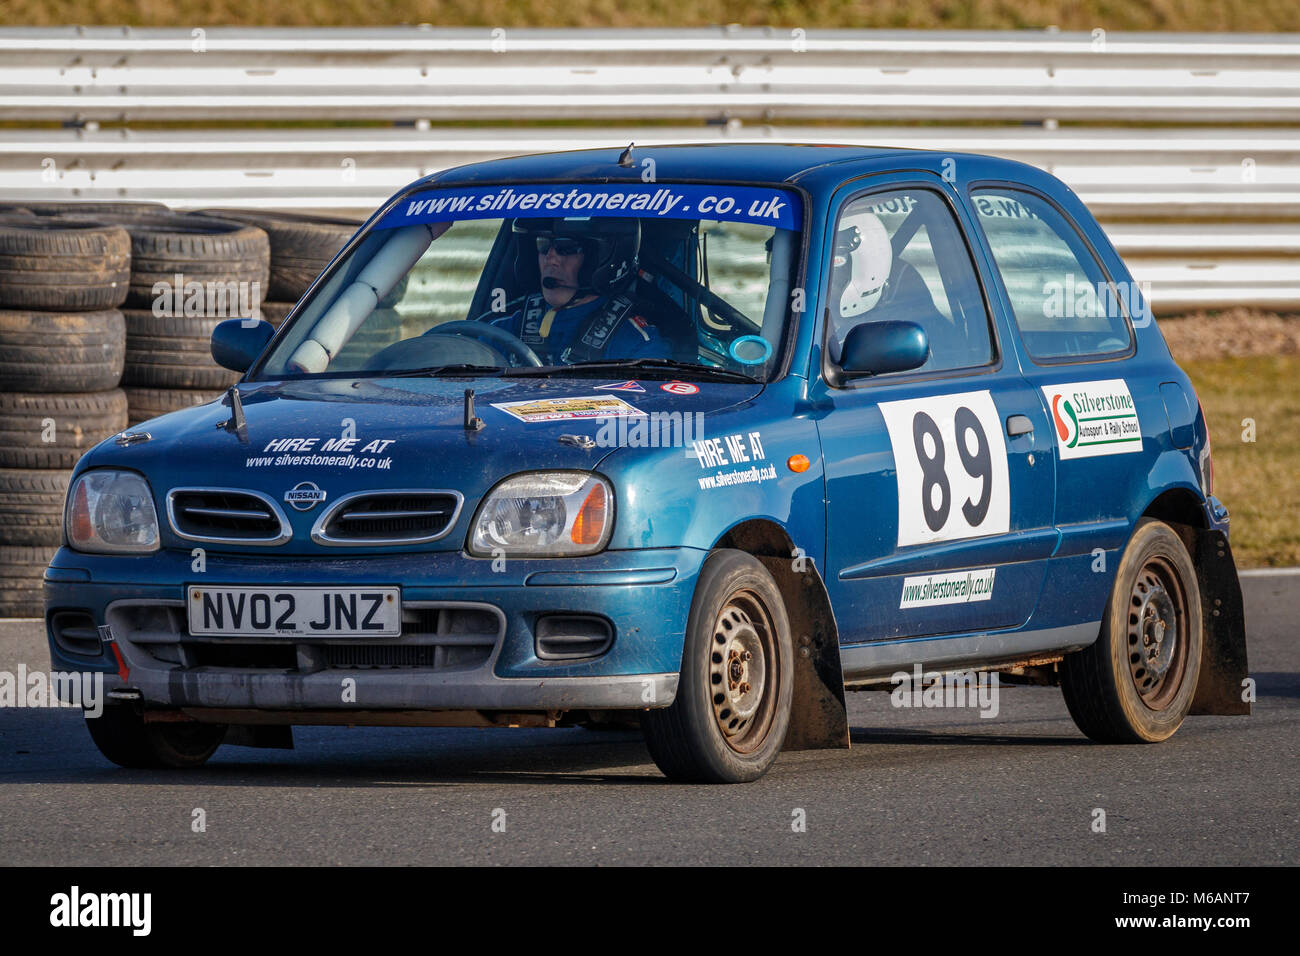 Ross Upton and Connor Poole in their Nissan Micra at the 2018 Motorsport News Snetterton Stage Rally, Norfolk, UK. - Stock Image